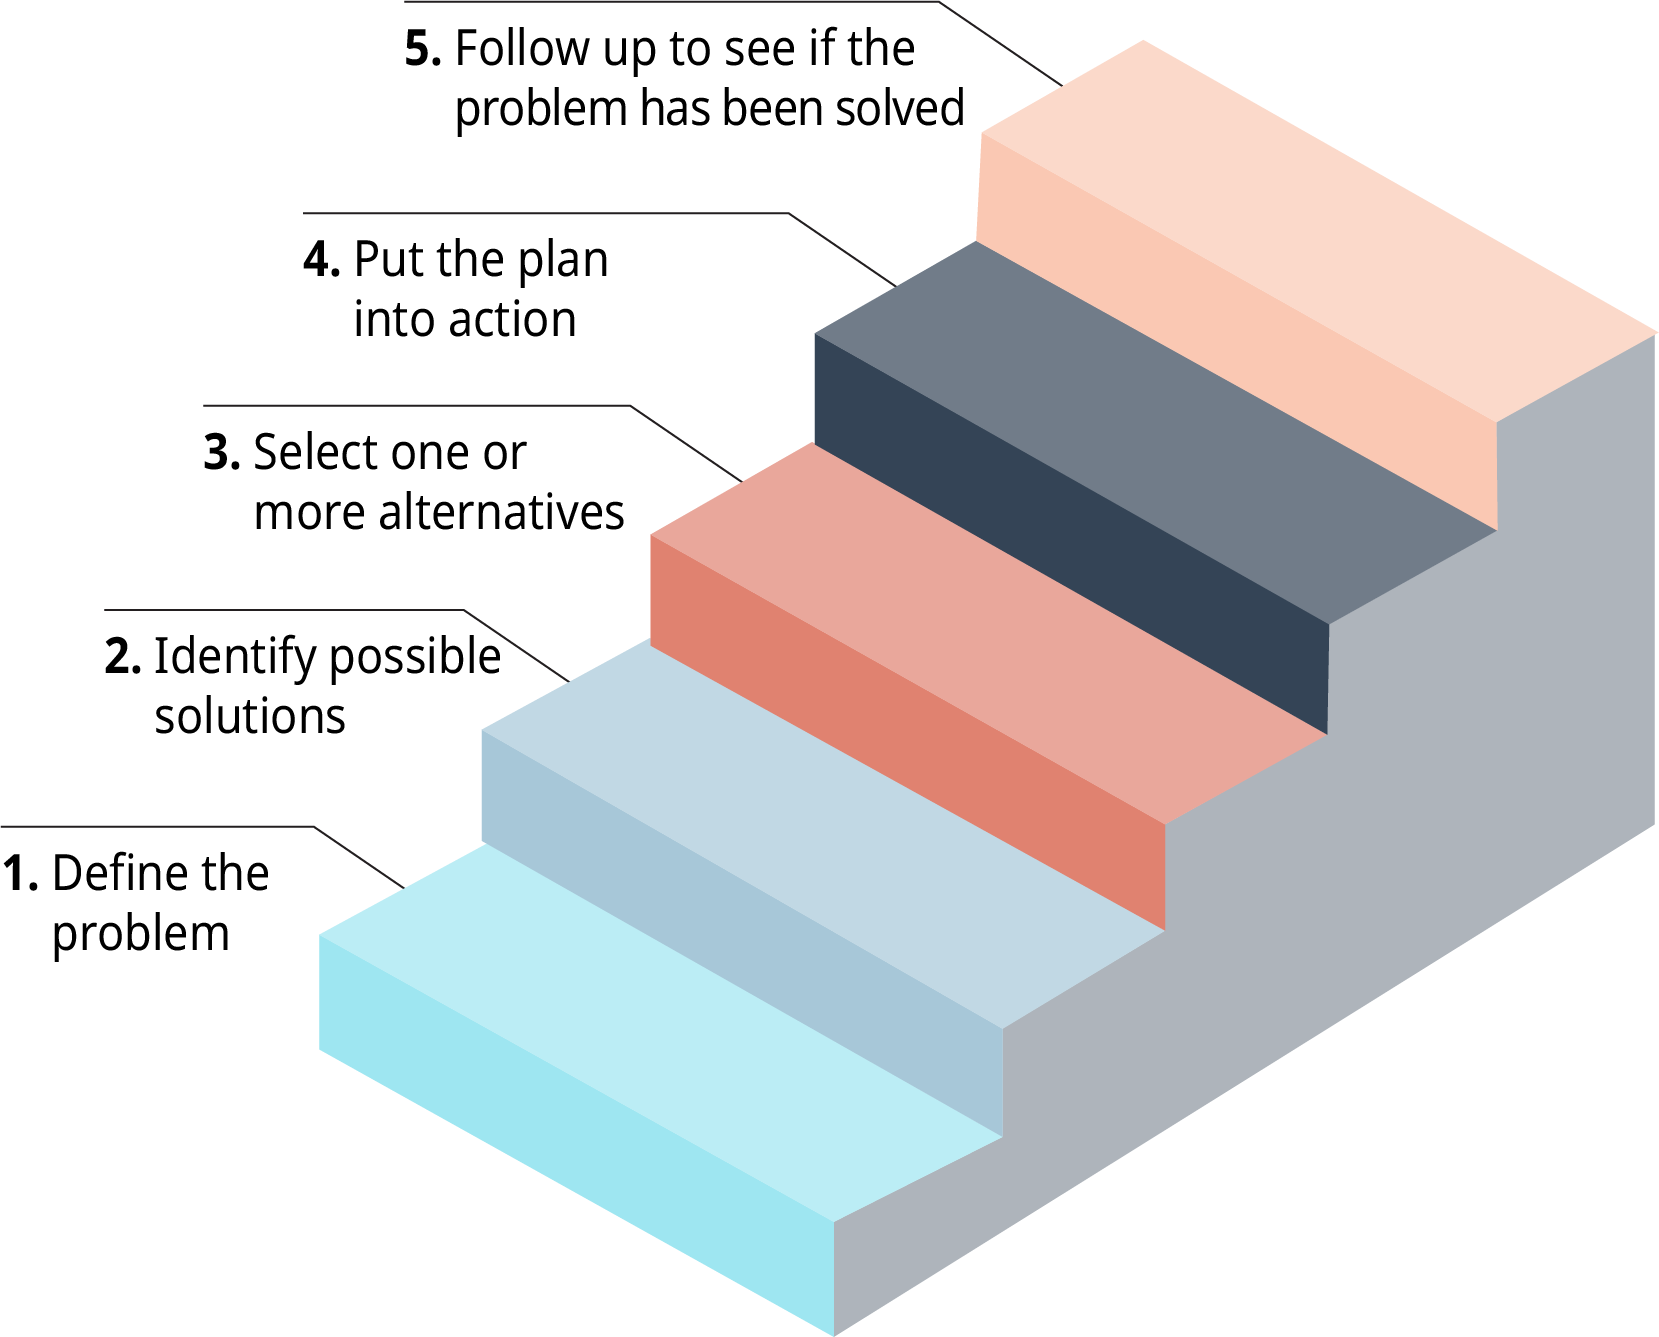 The five steps in the decision making process are illustrated as a staircase, with step 1 as the bottom step, and step 5 as the top step.